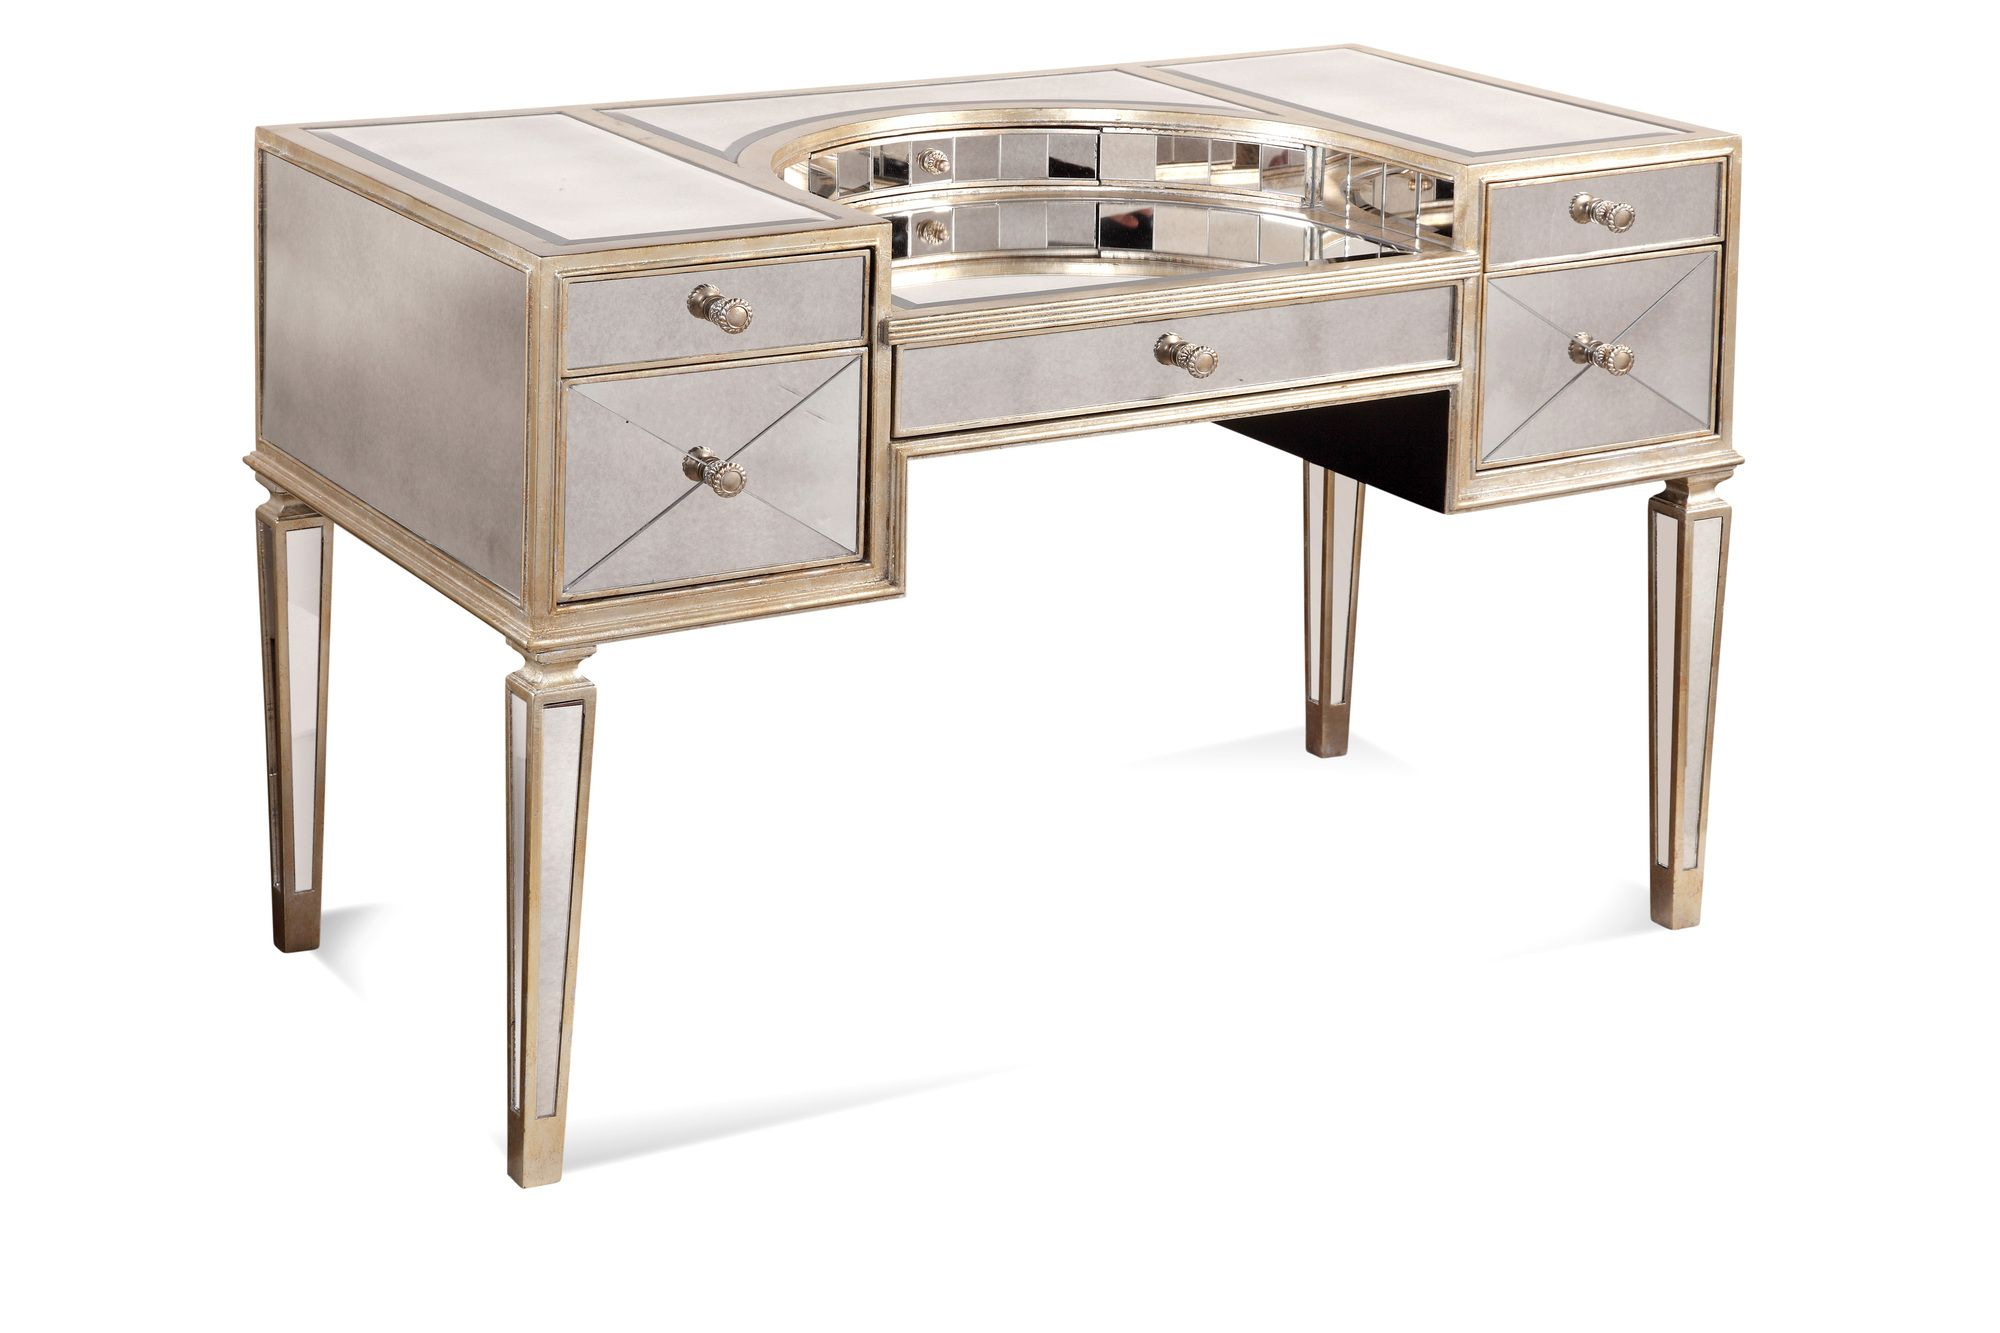 borghese mirrored furniture. Bassett Mirror Borghese Mirrored Ladies Writing Desk Furniture M